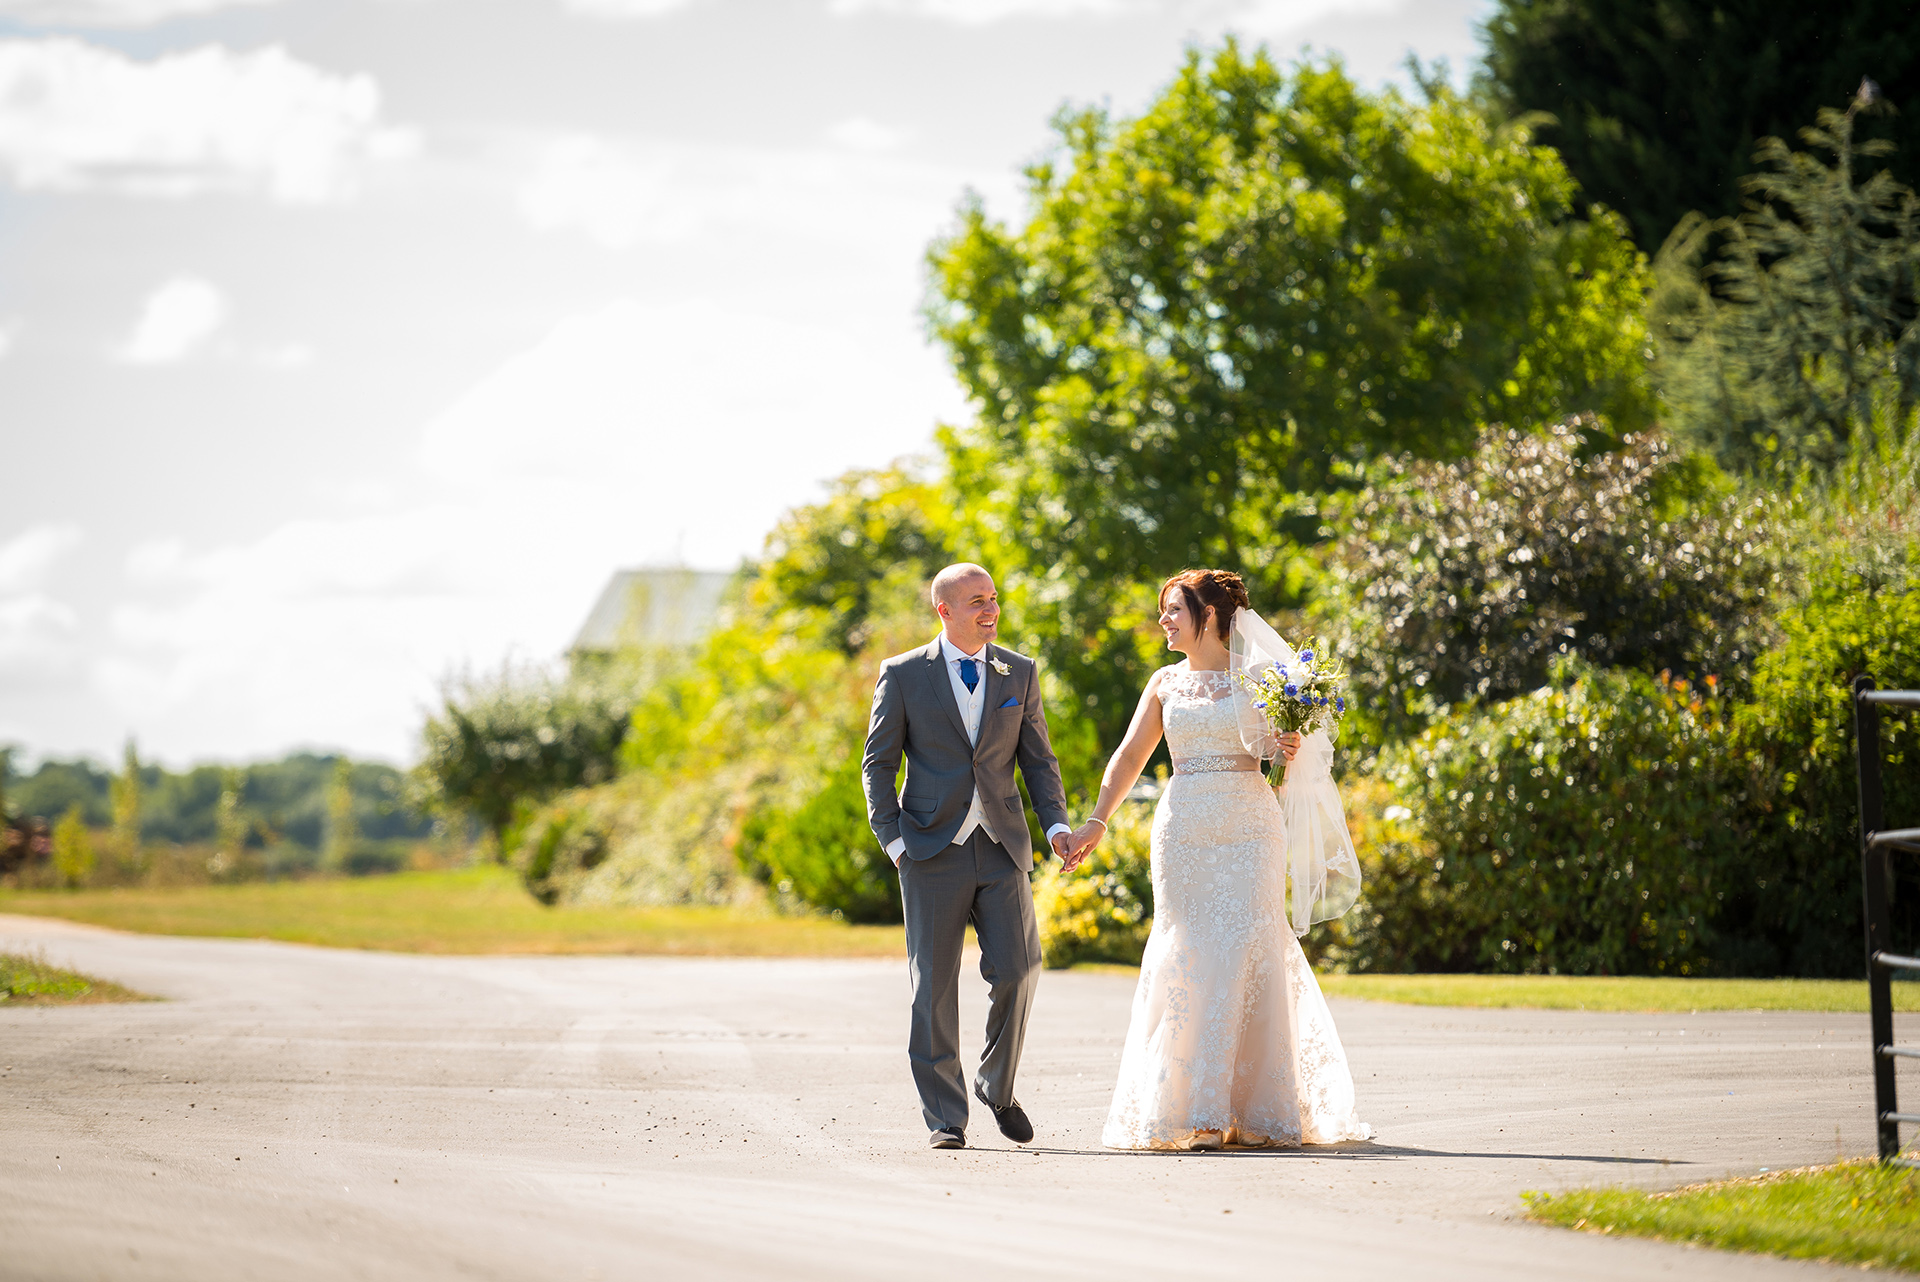 The bride and groom steal a moment away from guests to reflect on their happy wedding day